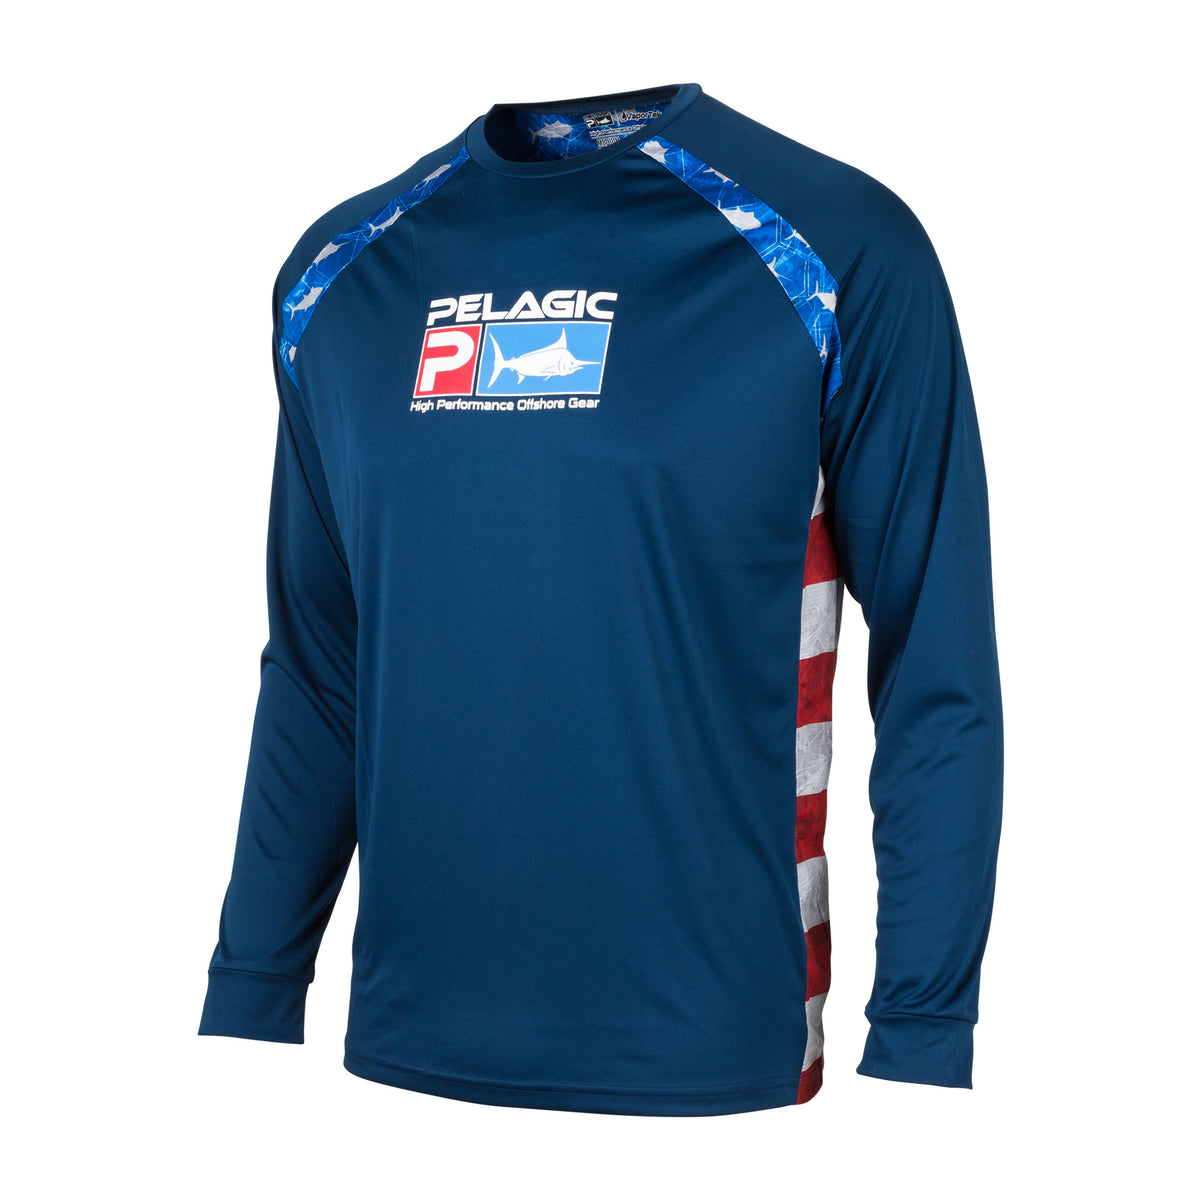 Vaportek Sideline Performance Fishing Shirt Big Image - 1